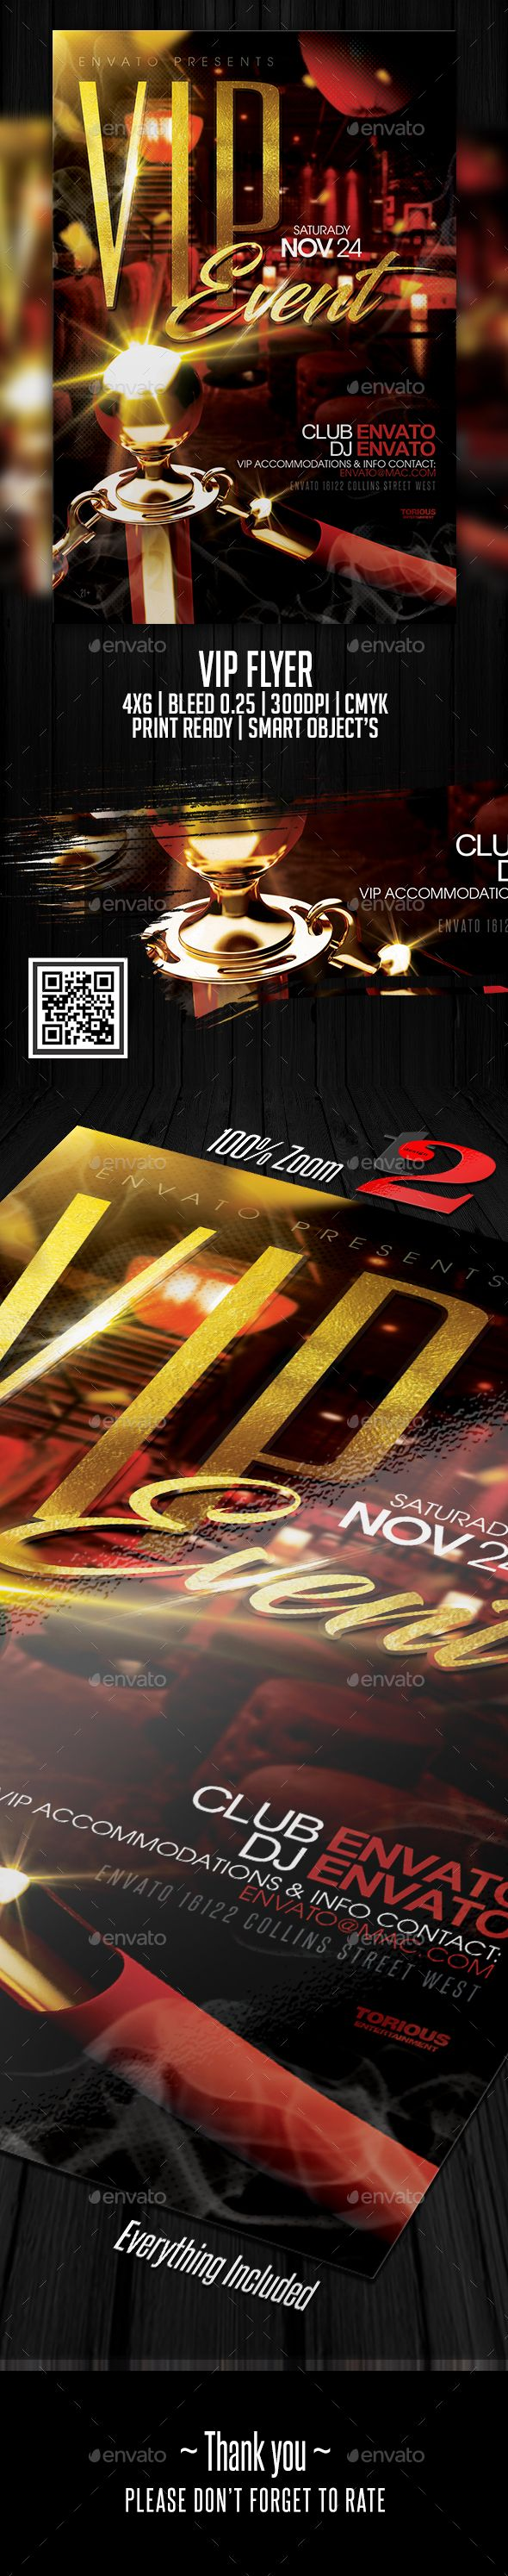 #Vip #Event #Flyer Template - Clubs & Parties Events